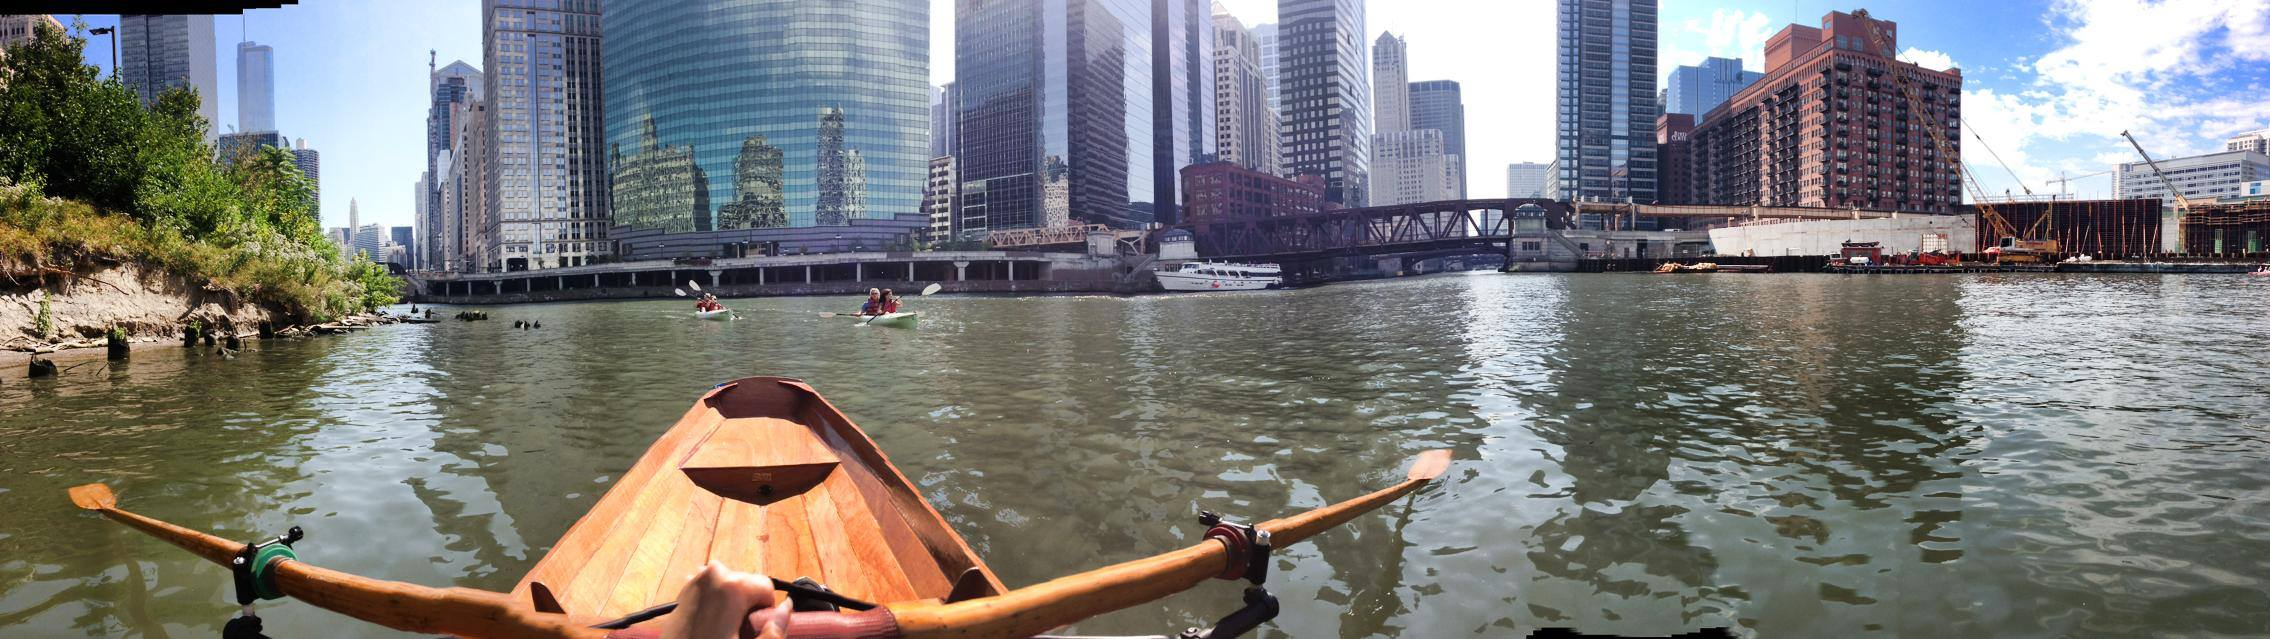 Rowing in the wherry my grandpa built on the Chicago river